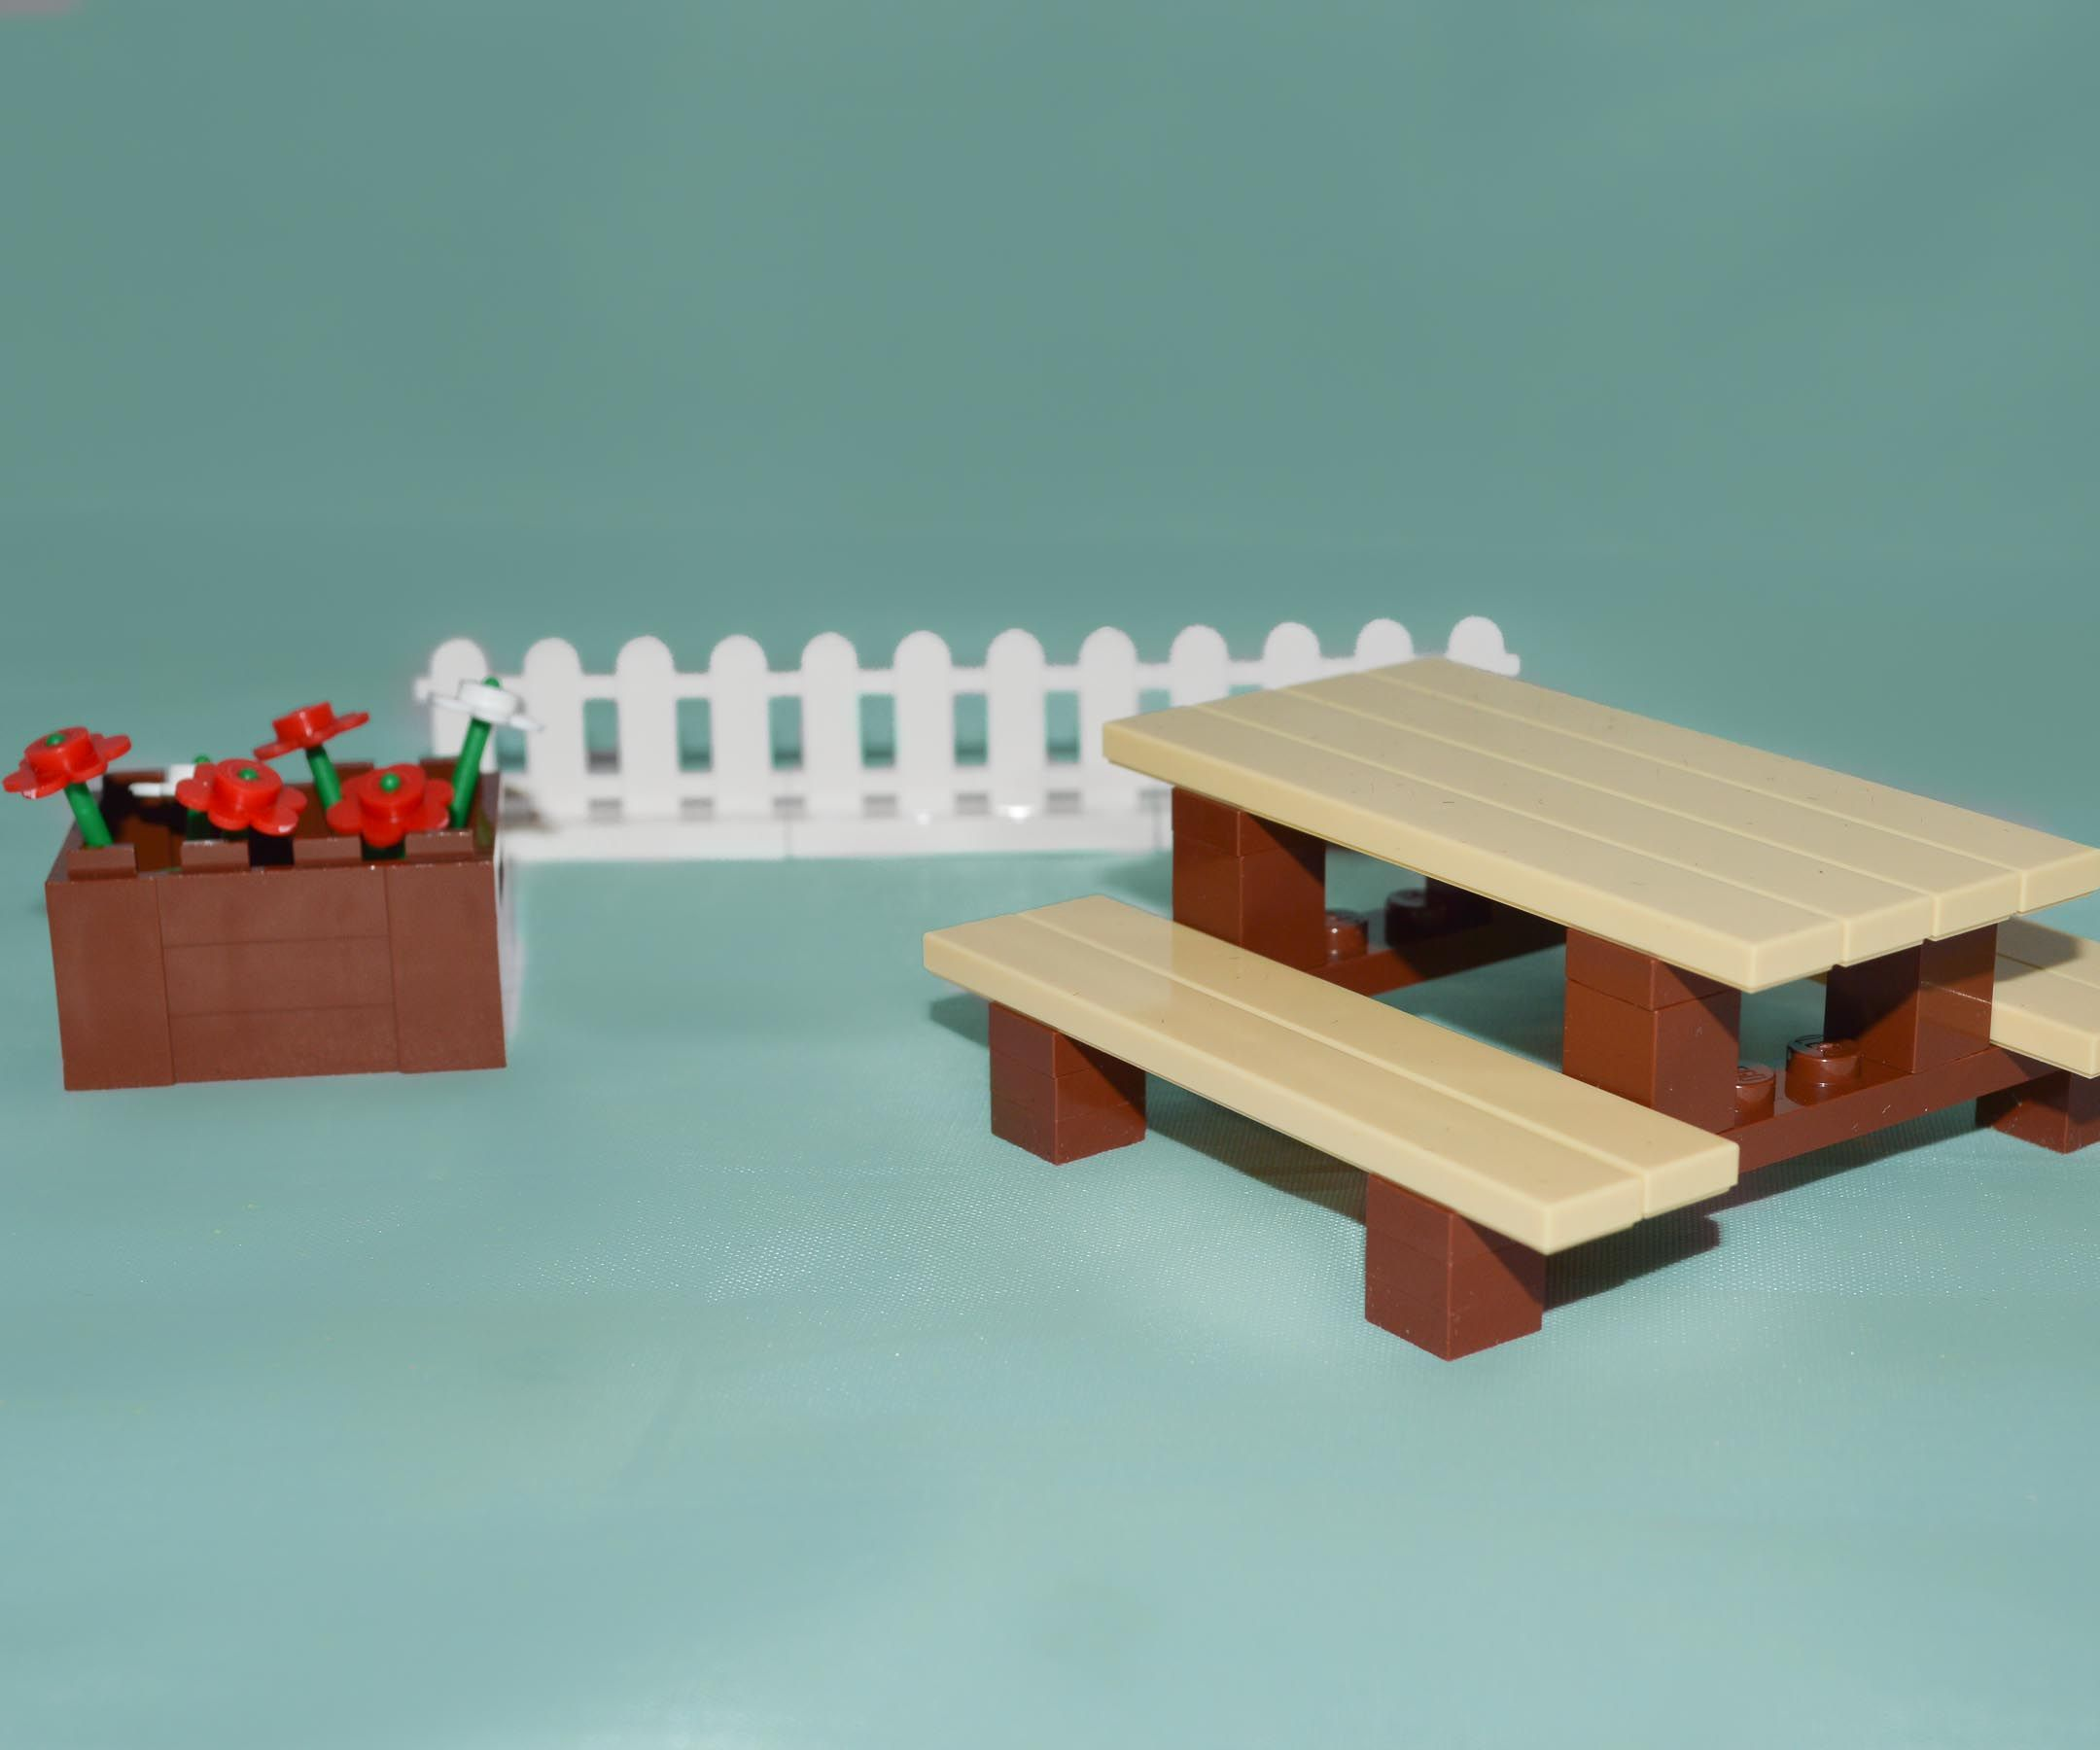 LEGO Furniture Picnic Table Set W Instructions Parts Minifig - Picnic table parts